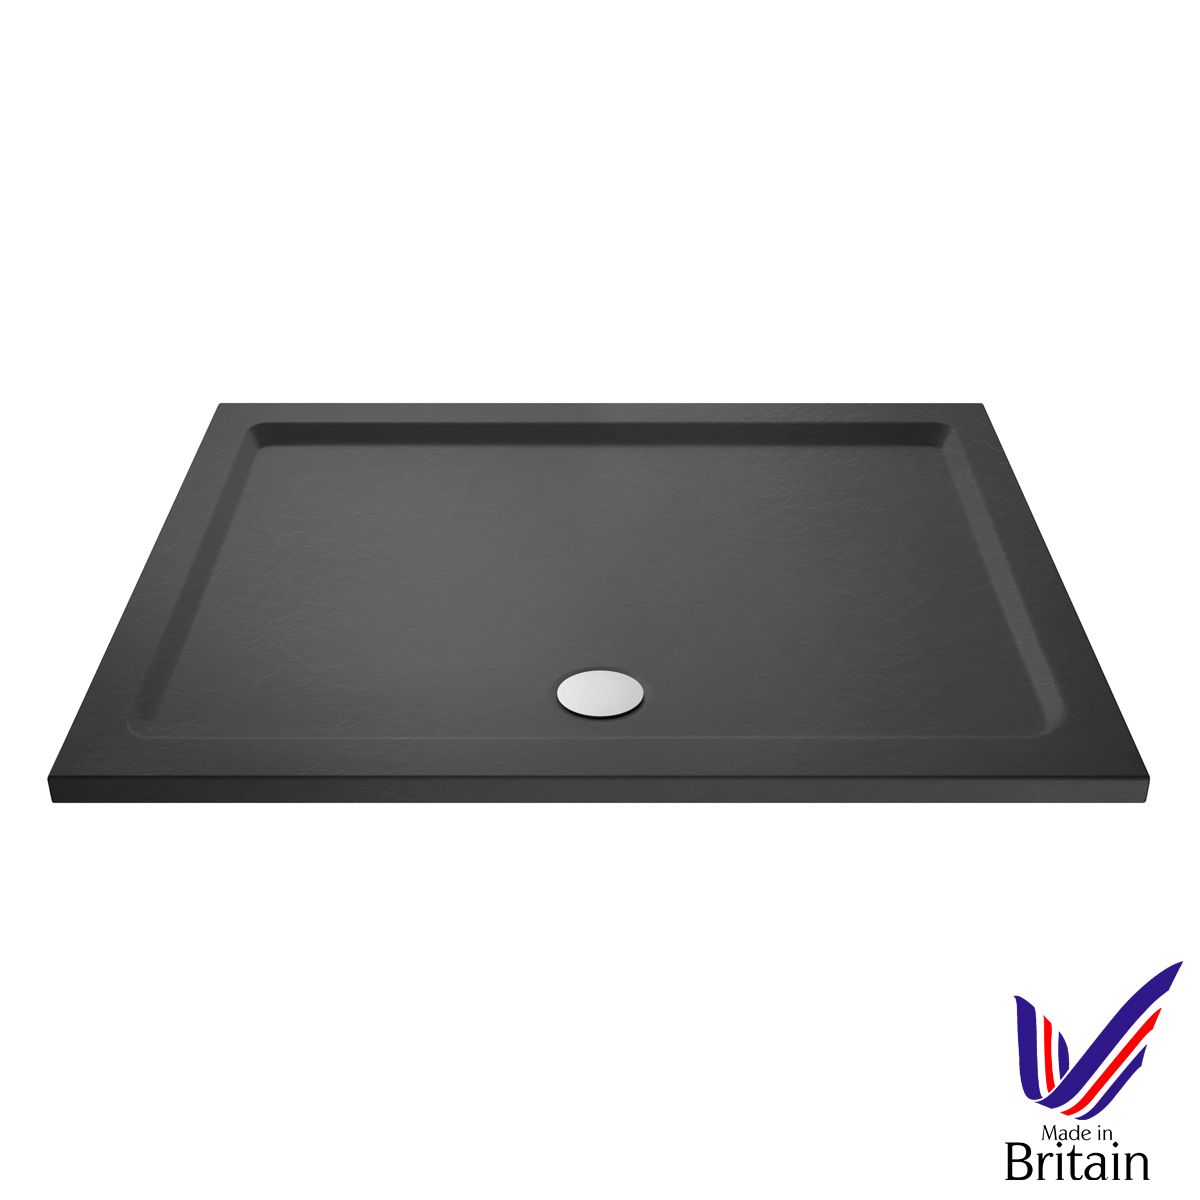 1400 x 760 Shower Tray Slate Grey Rectangular Low Profile by Pearlstone